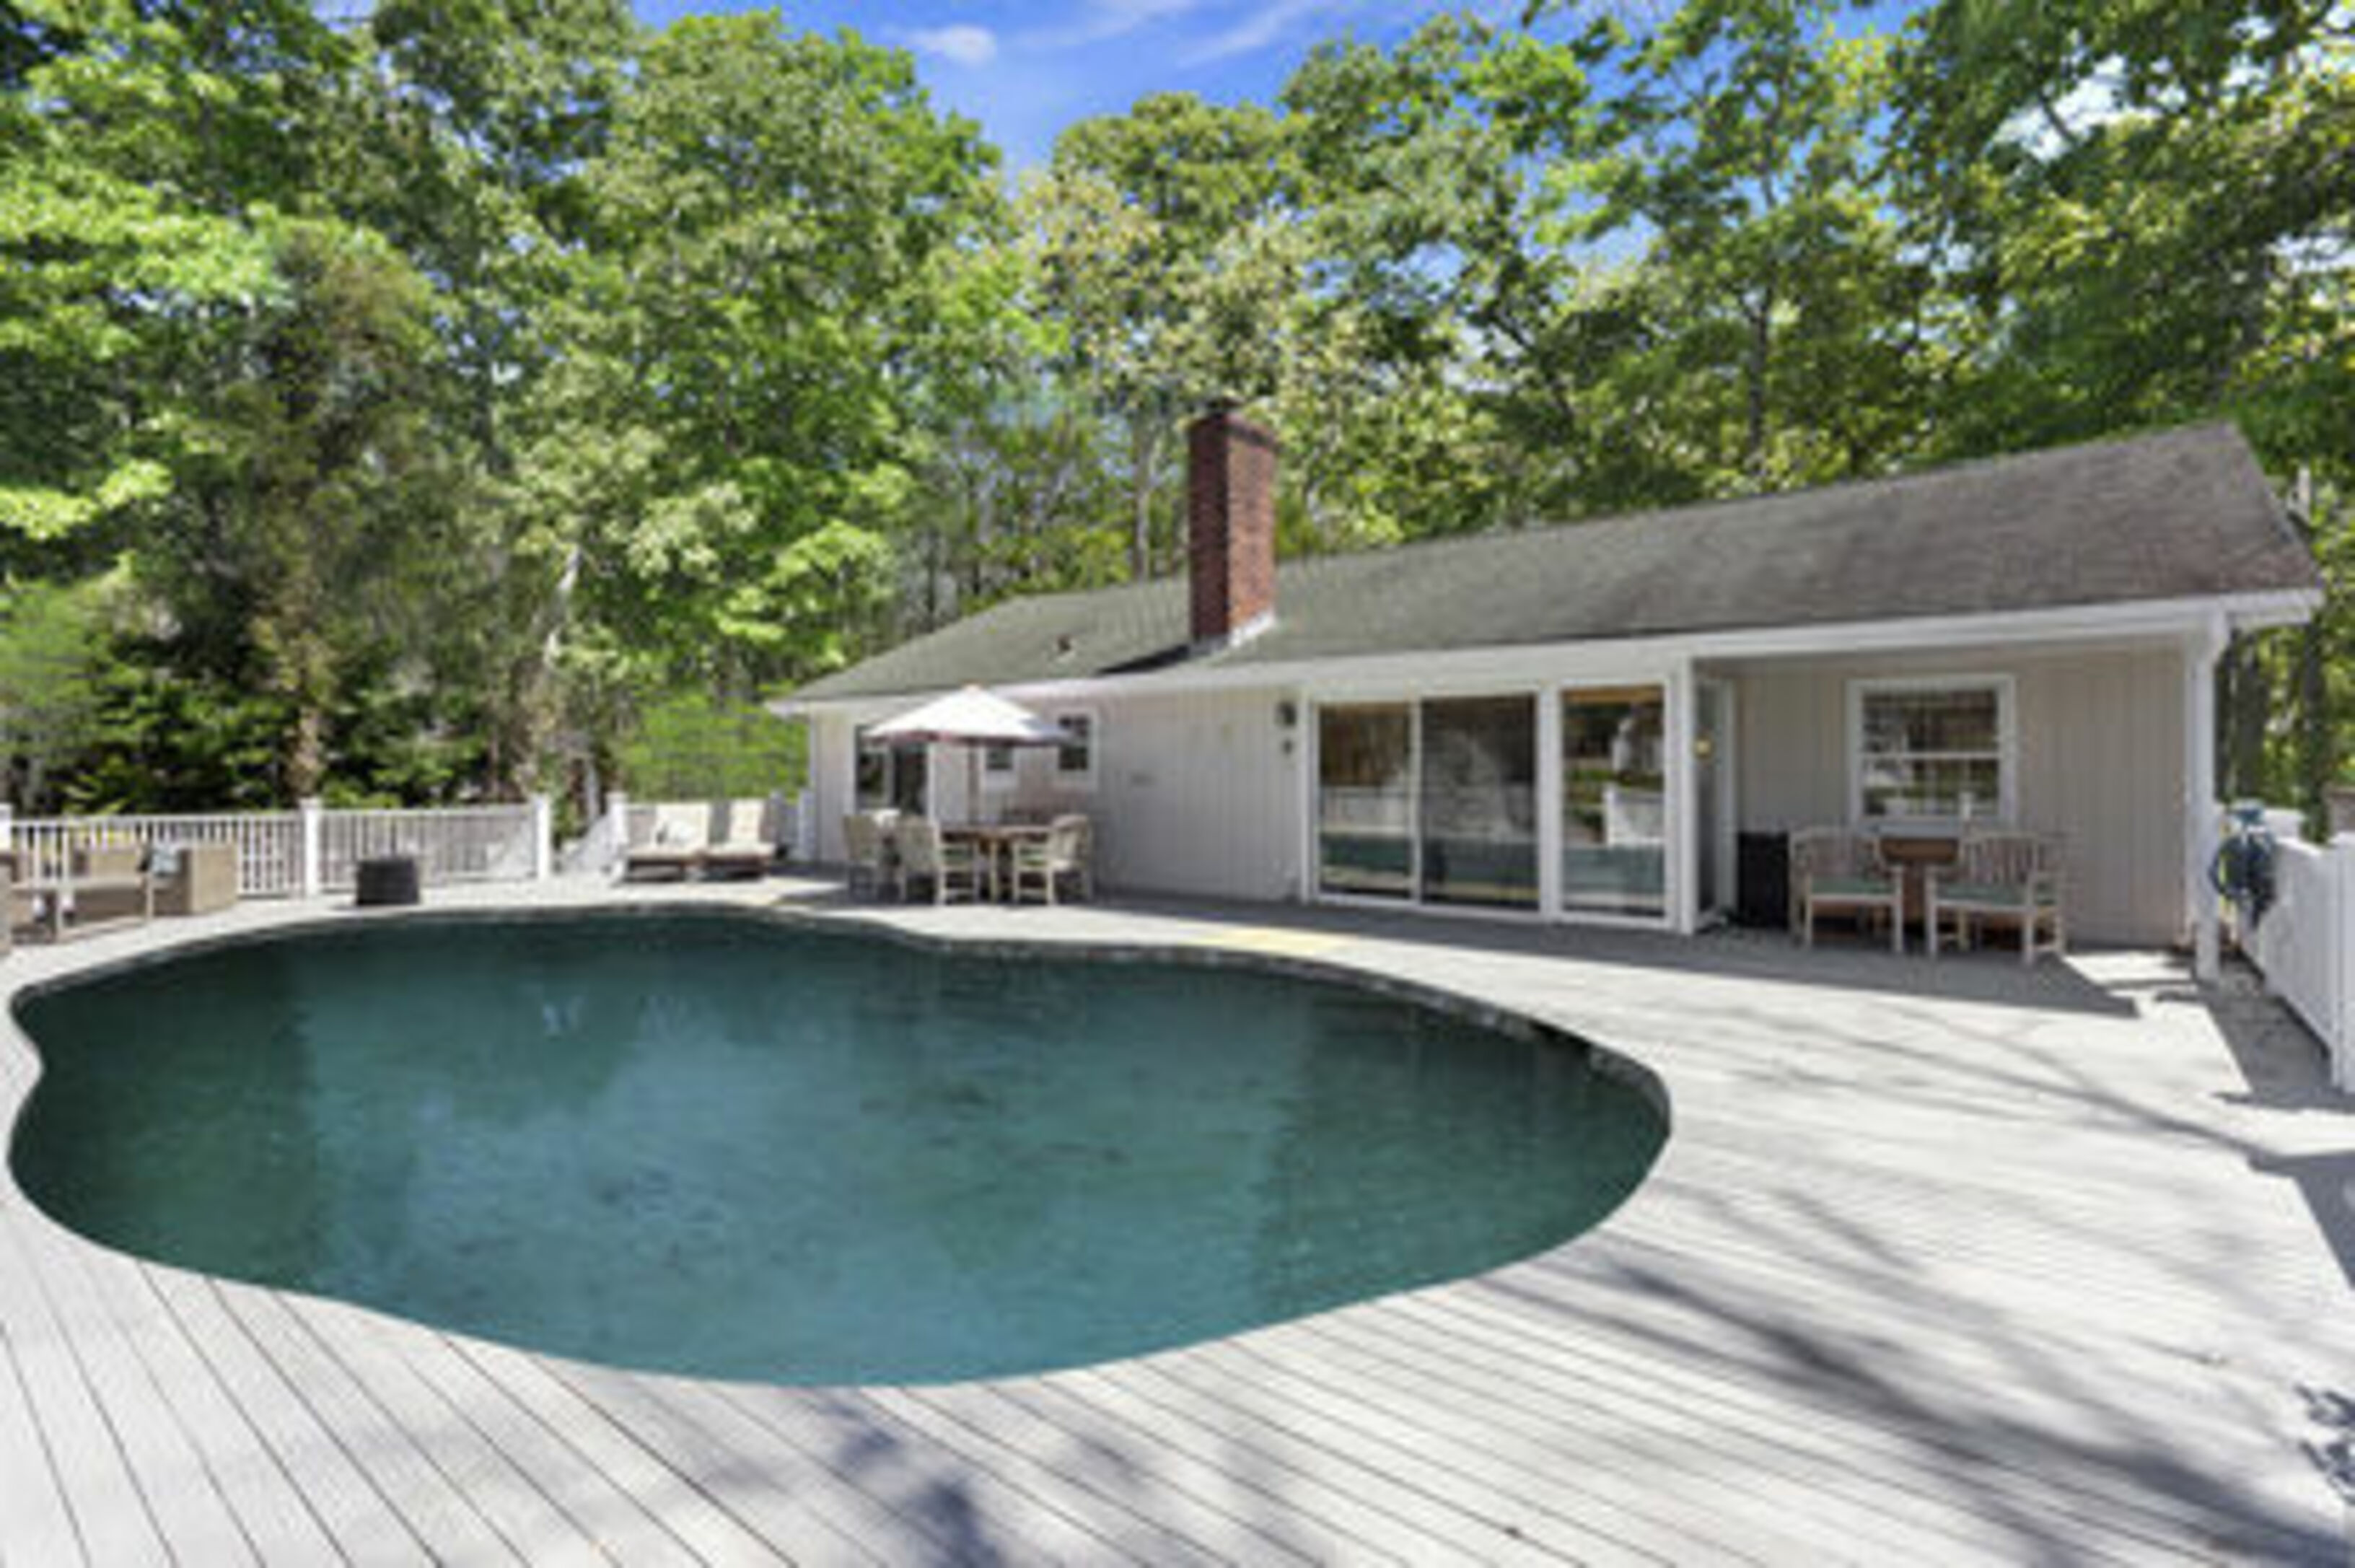 25 White Oak Ln - Westhampton South, New York